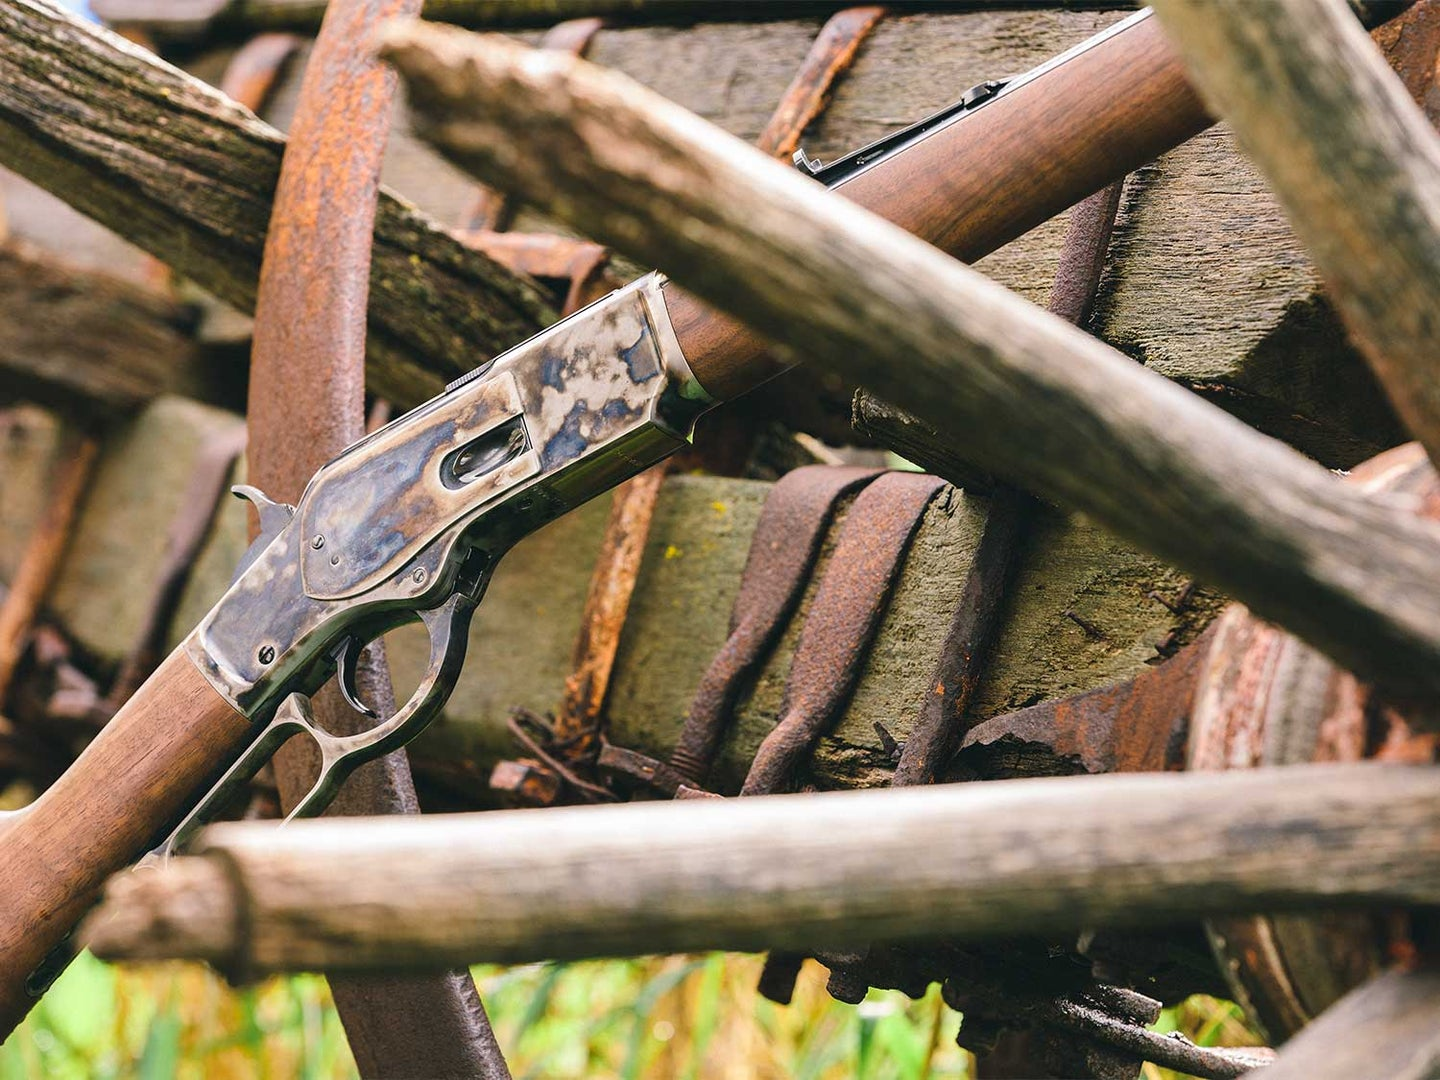 A Winchester rifle leaning against a wooden wagon.